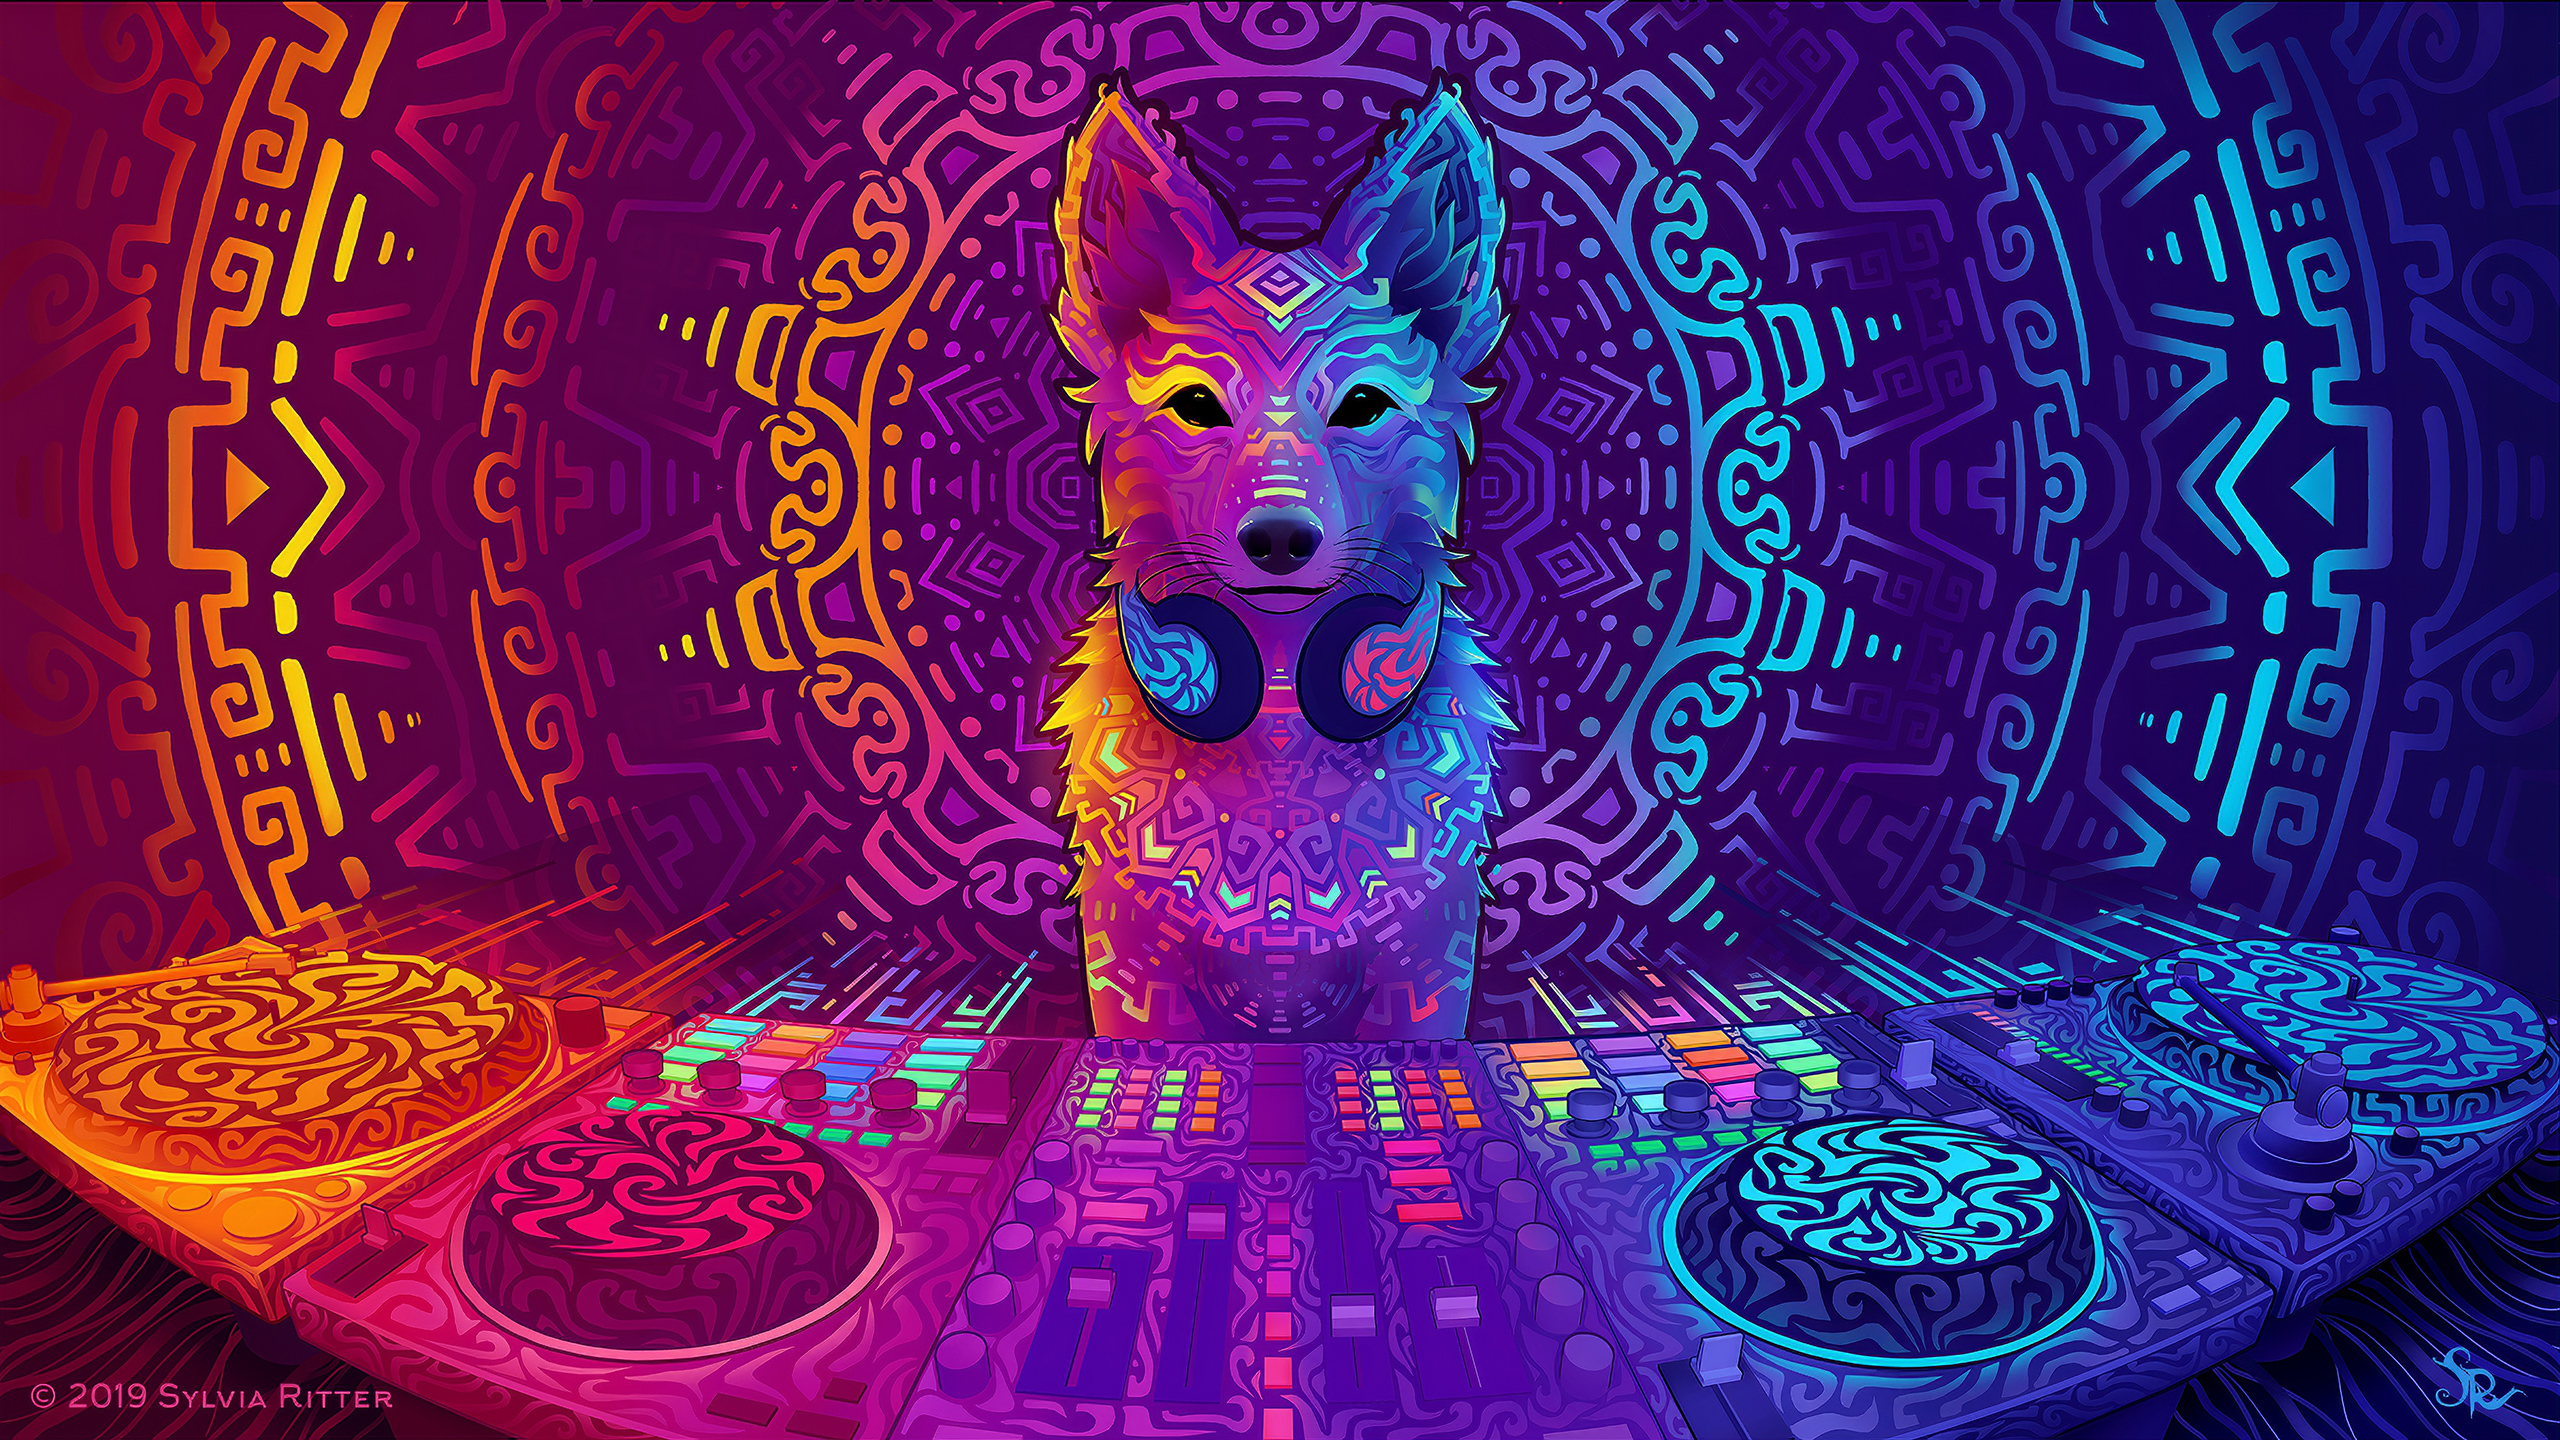 General 2560x1440 psychedelic abstract colorful headphones music player sound mixers technology music digital art Ubuntu disc jockey turntables Linux dingo DJ